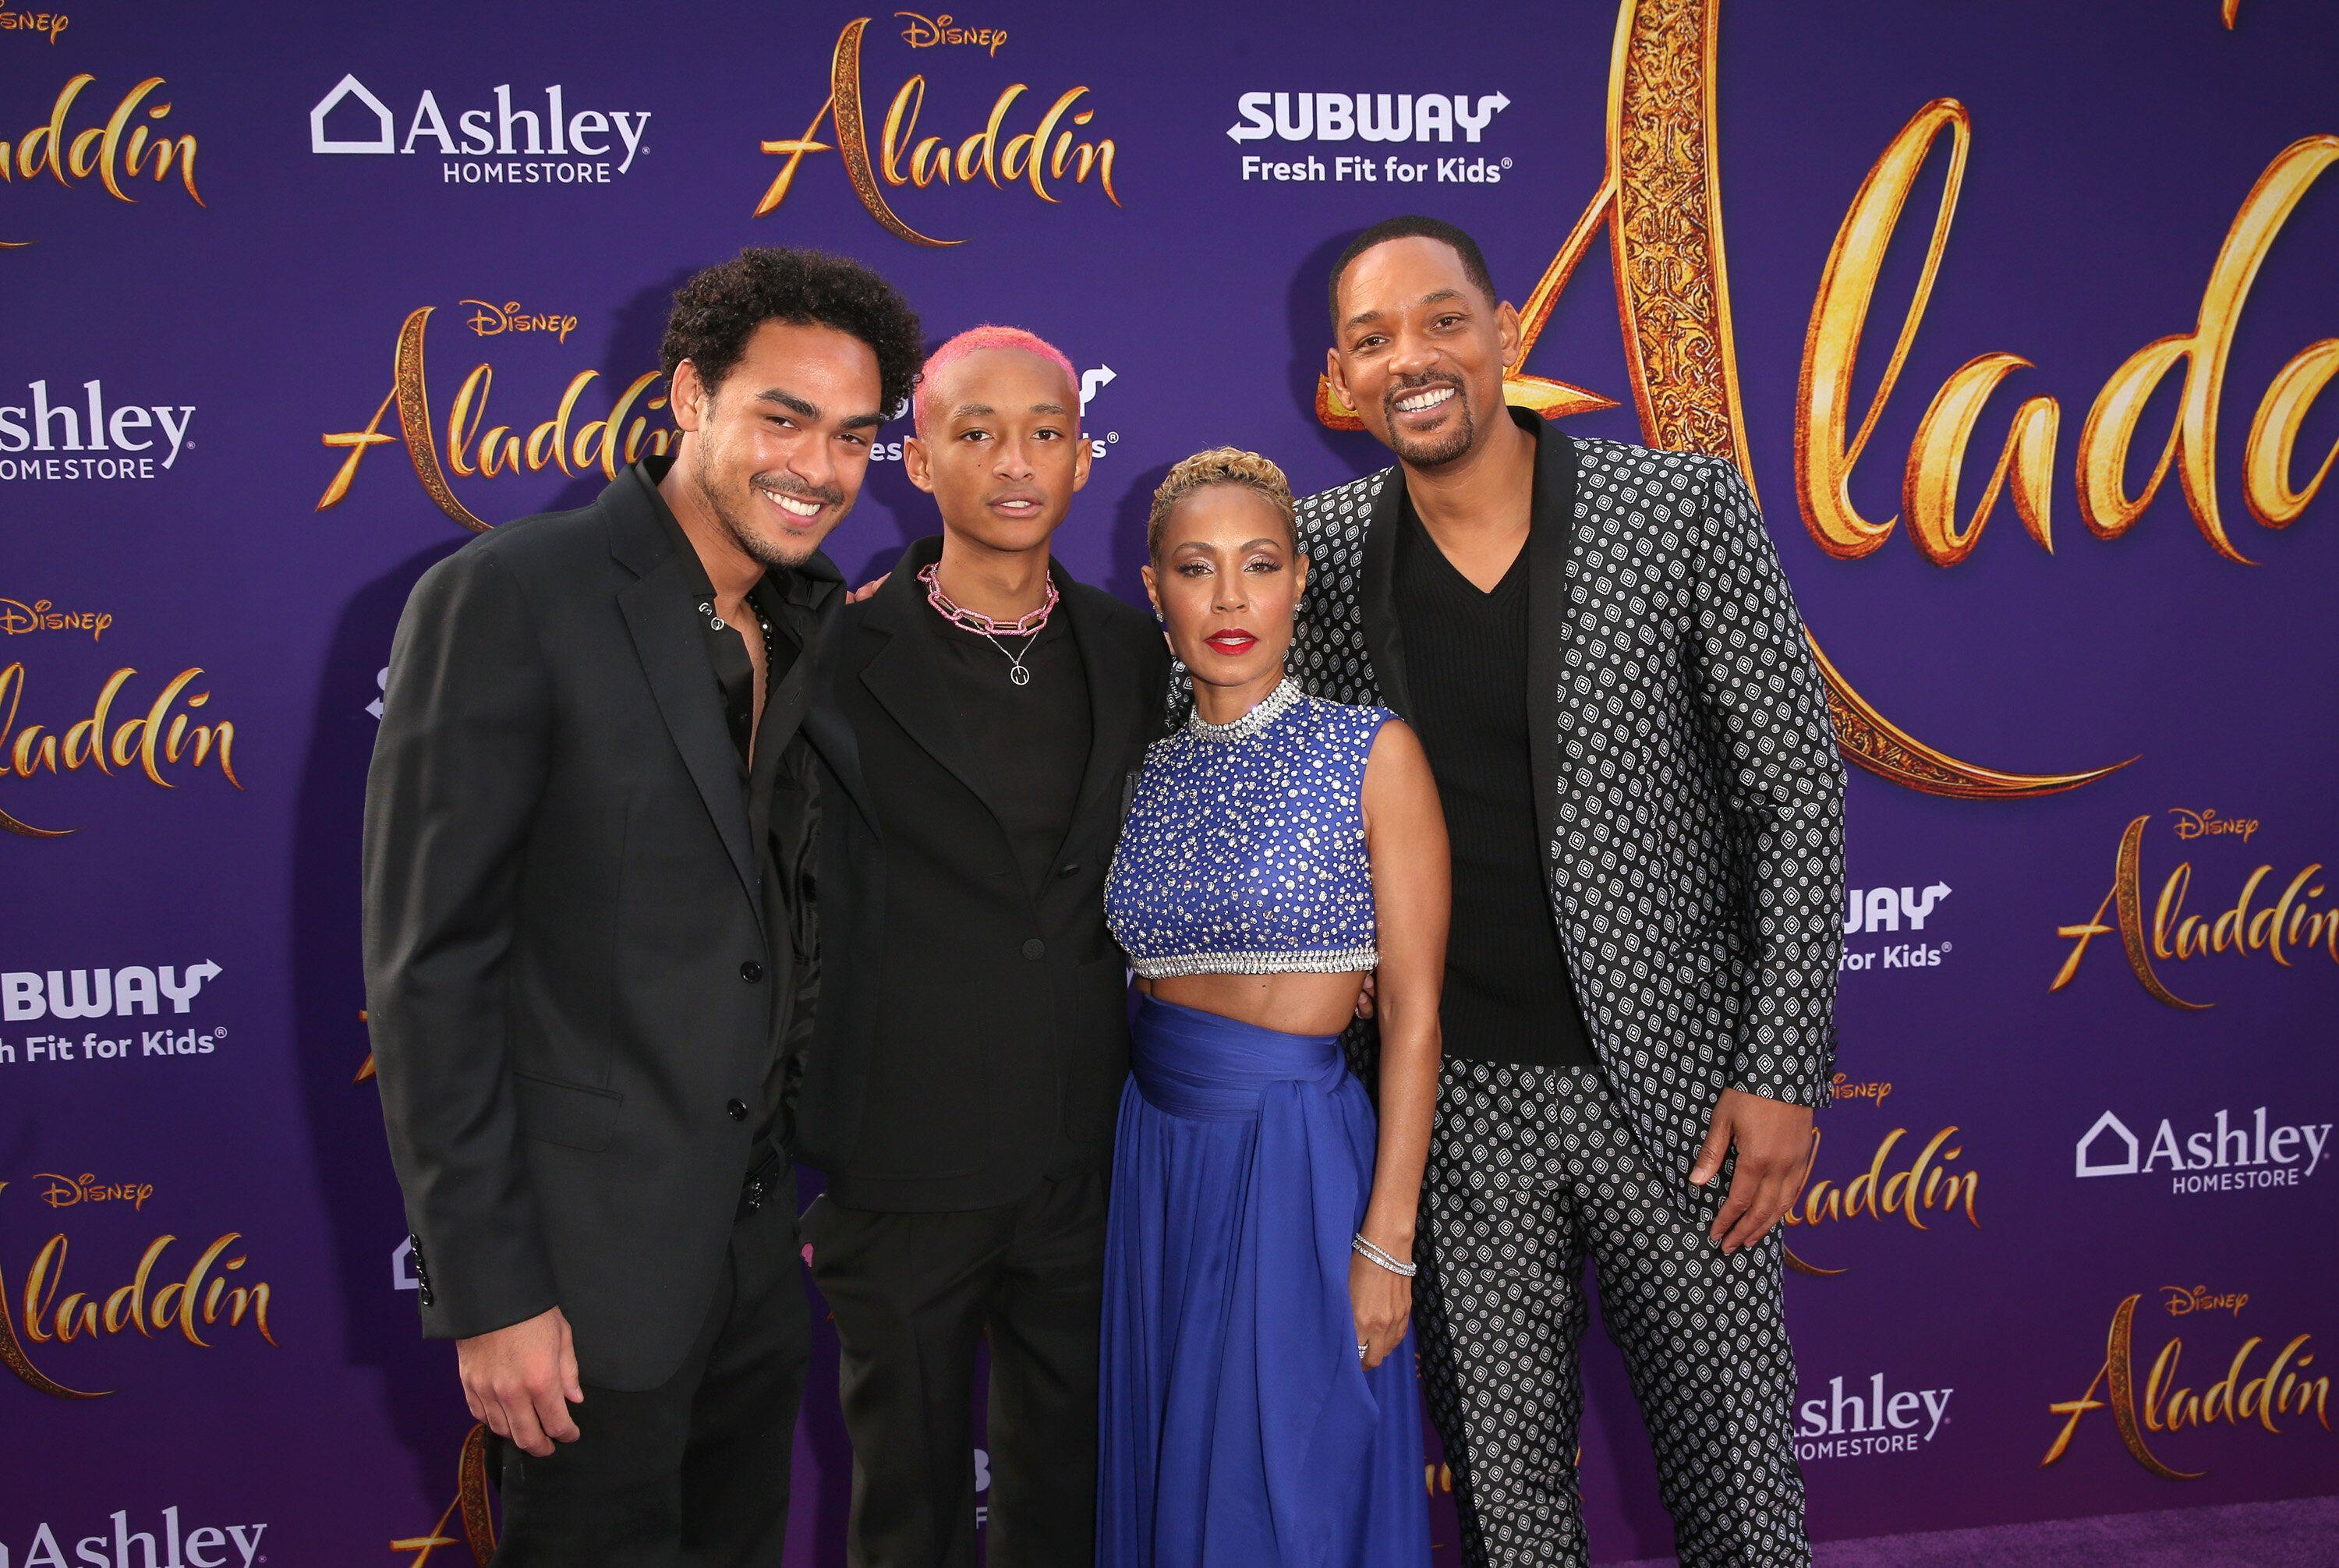 Trey Smith (far left), Jaden Smith (left) Will Smith and Jada Pinkett Smith (far right) at the 'Aladdin' premiere at El Capitan Theatre in Hollywood. [Photo: Getty]